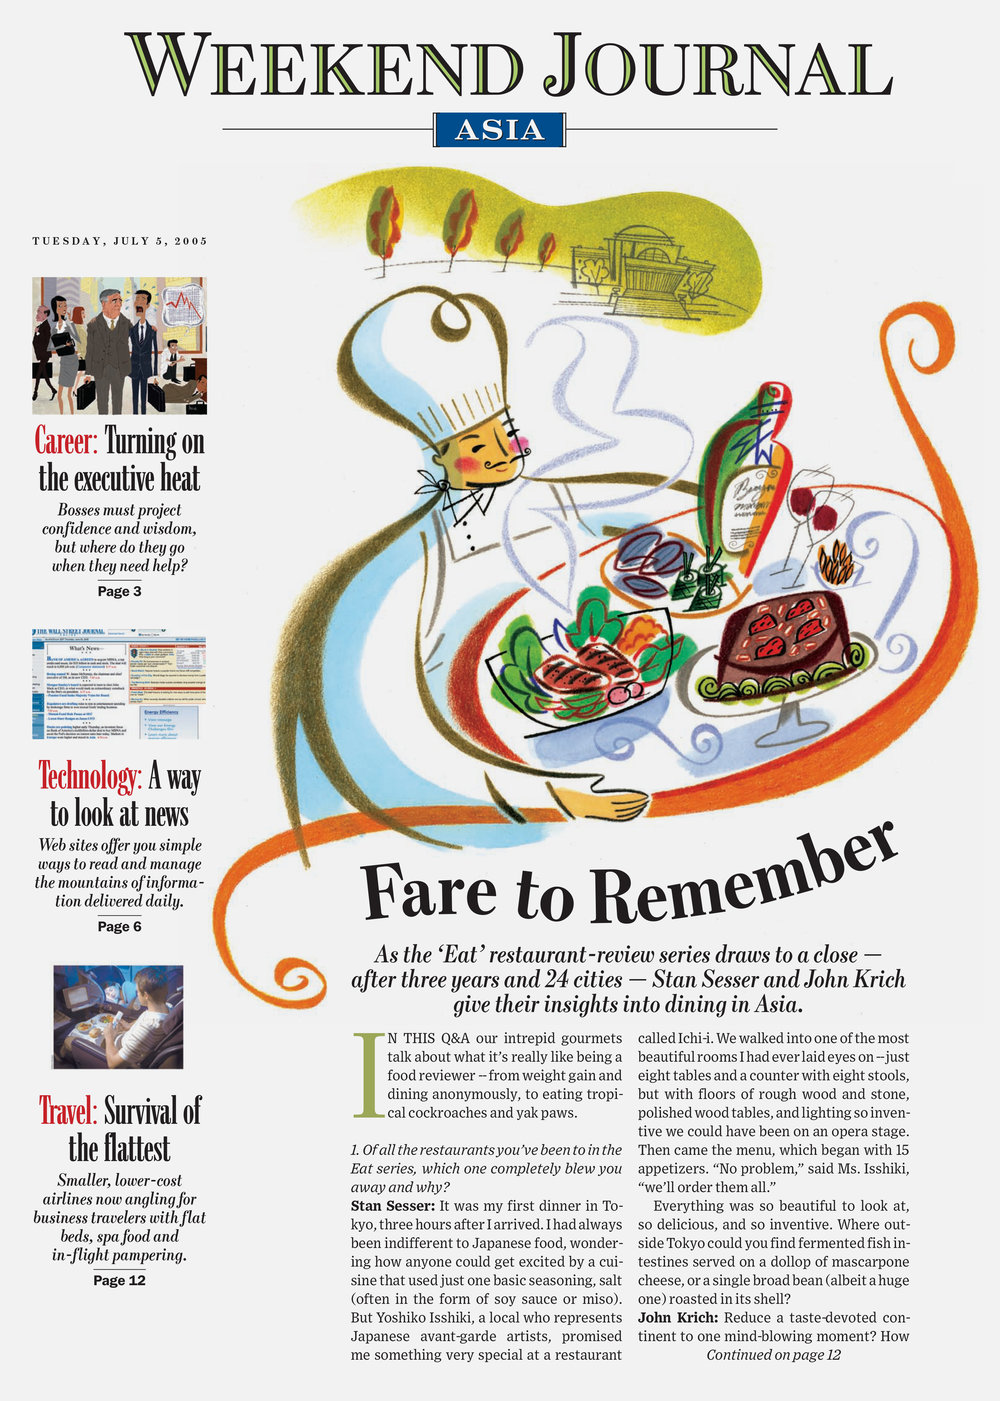 The Wall Street Journal redesign, Asia Edition. Published by Dow Jones. Illustration by Steven Salerno